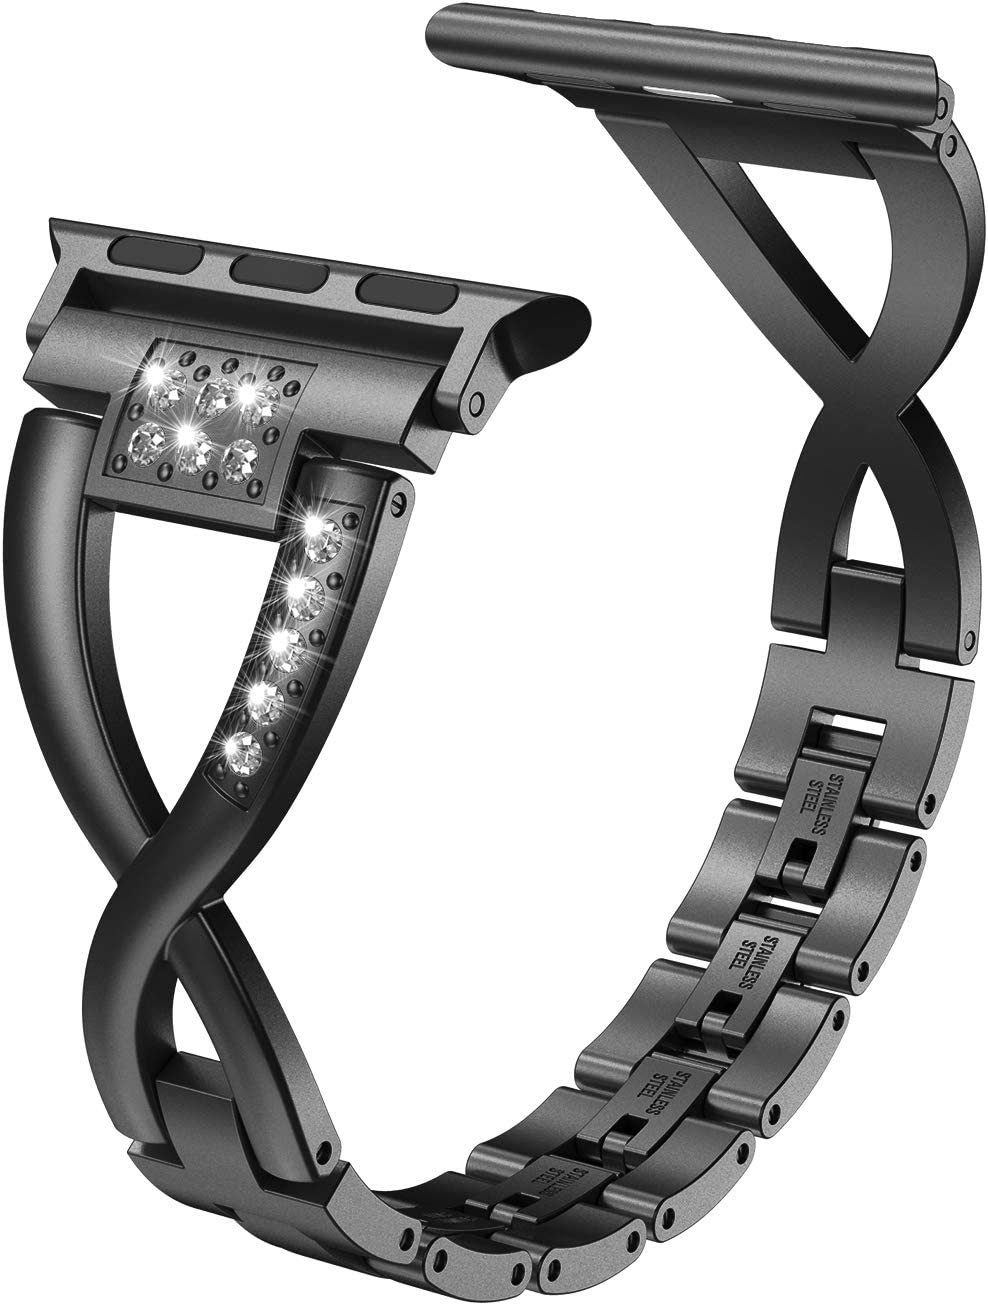 Wearlizer Bling Compatible with Apple Watch Band 42mm 44mm Rhinestone for iWatch SE Black Strap Metal X-Link Wristband Sleek Dressy Replacement Metal Removal Clasp Series 6 5 4 3 2